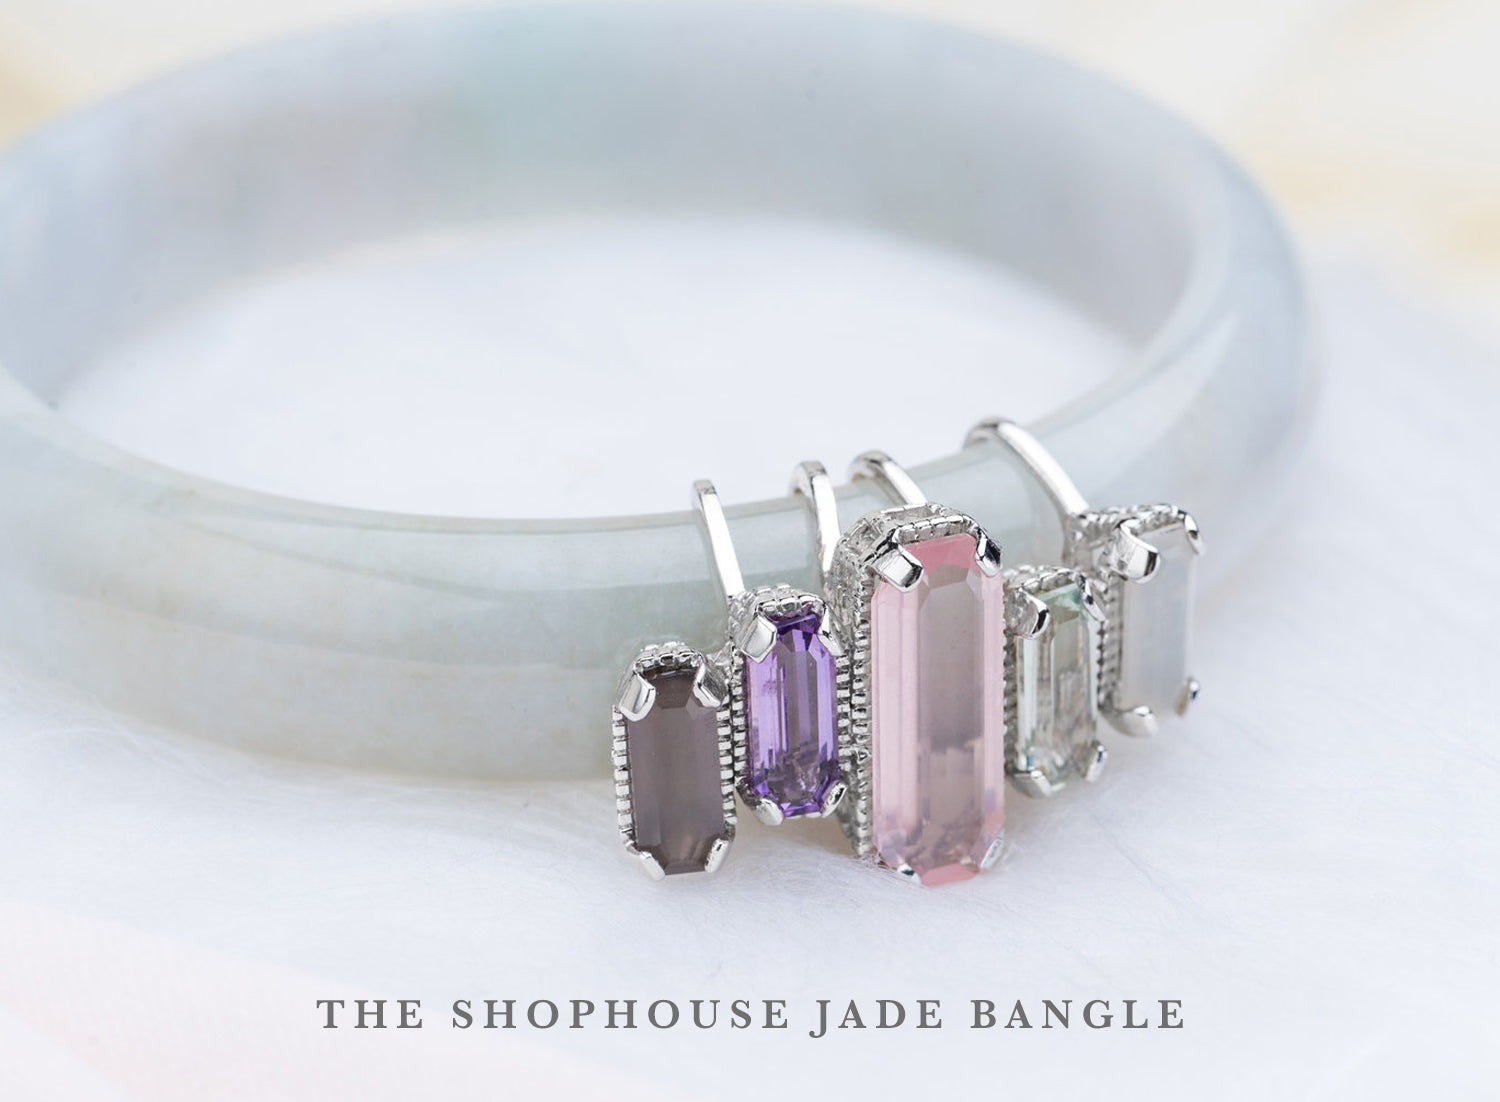 Shophouse Jade Bangle